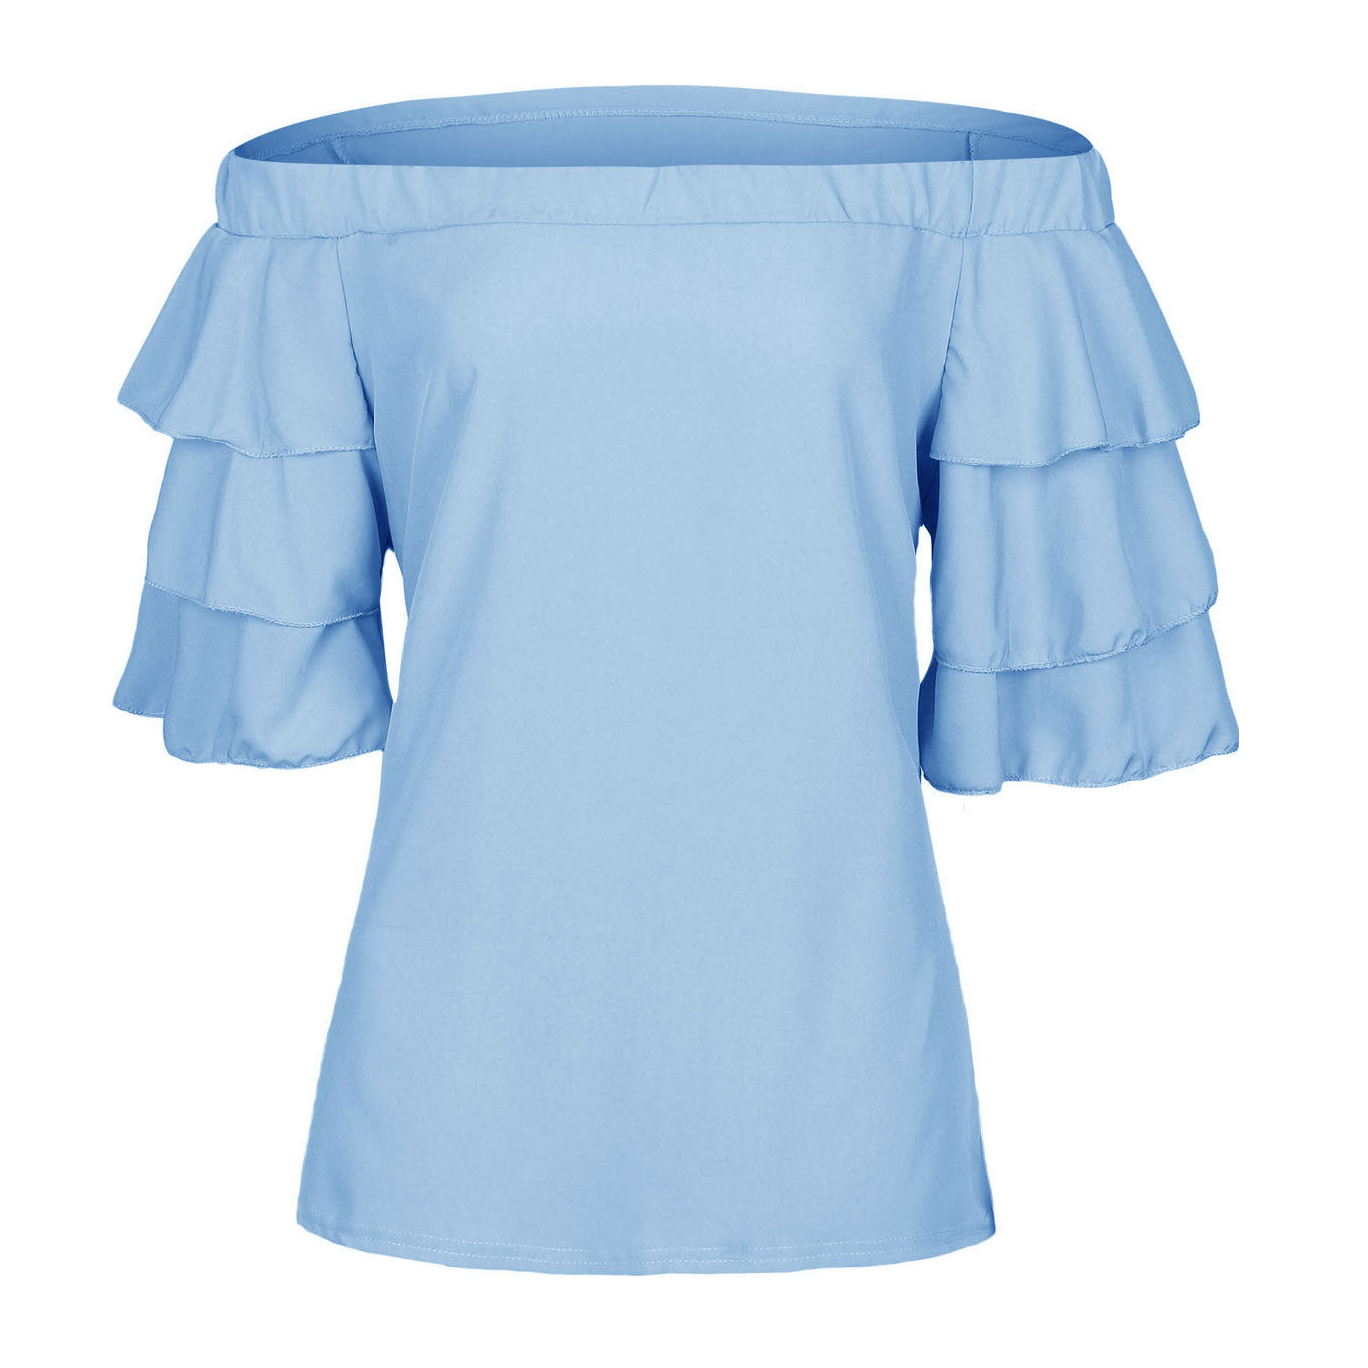 Leisure Dew Shoulder Half Sleeves Falbala Design Light Blue Polyester Shirts